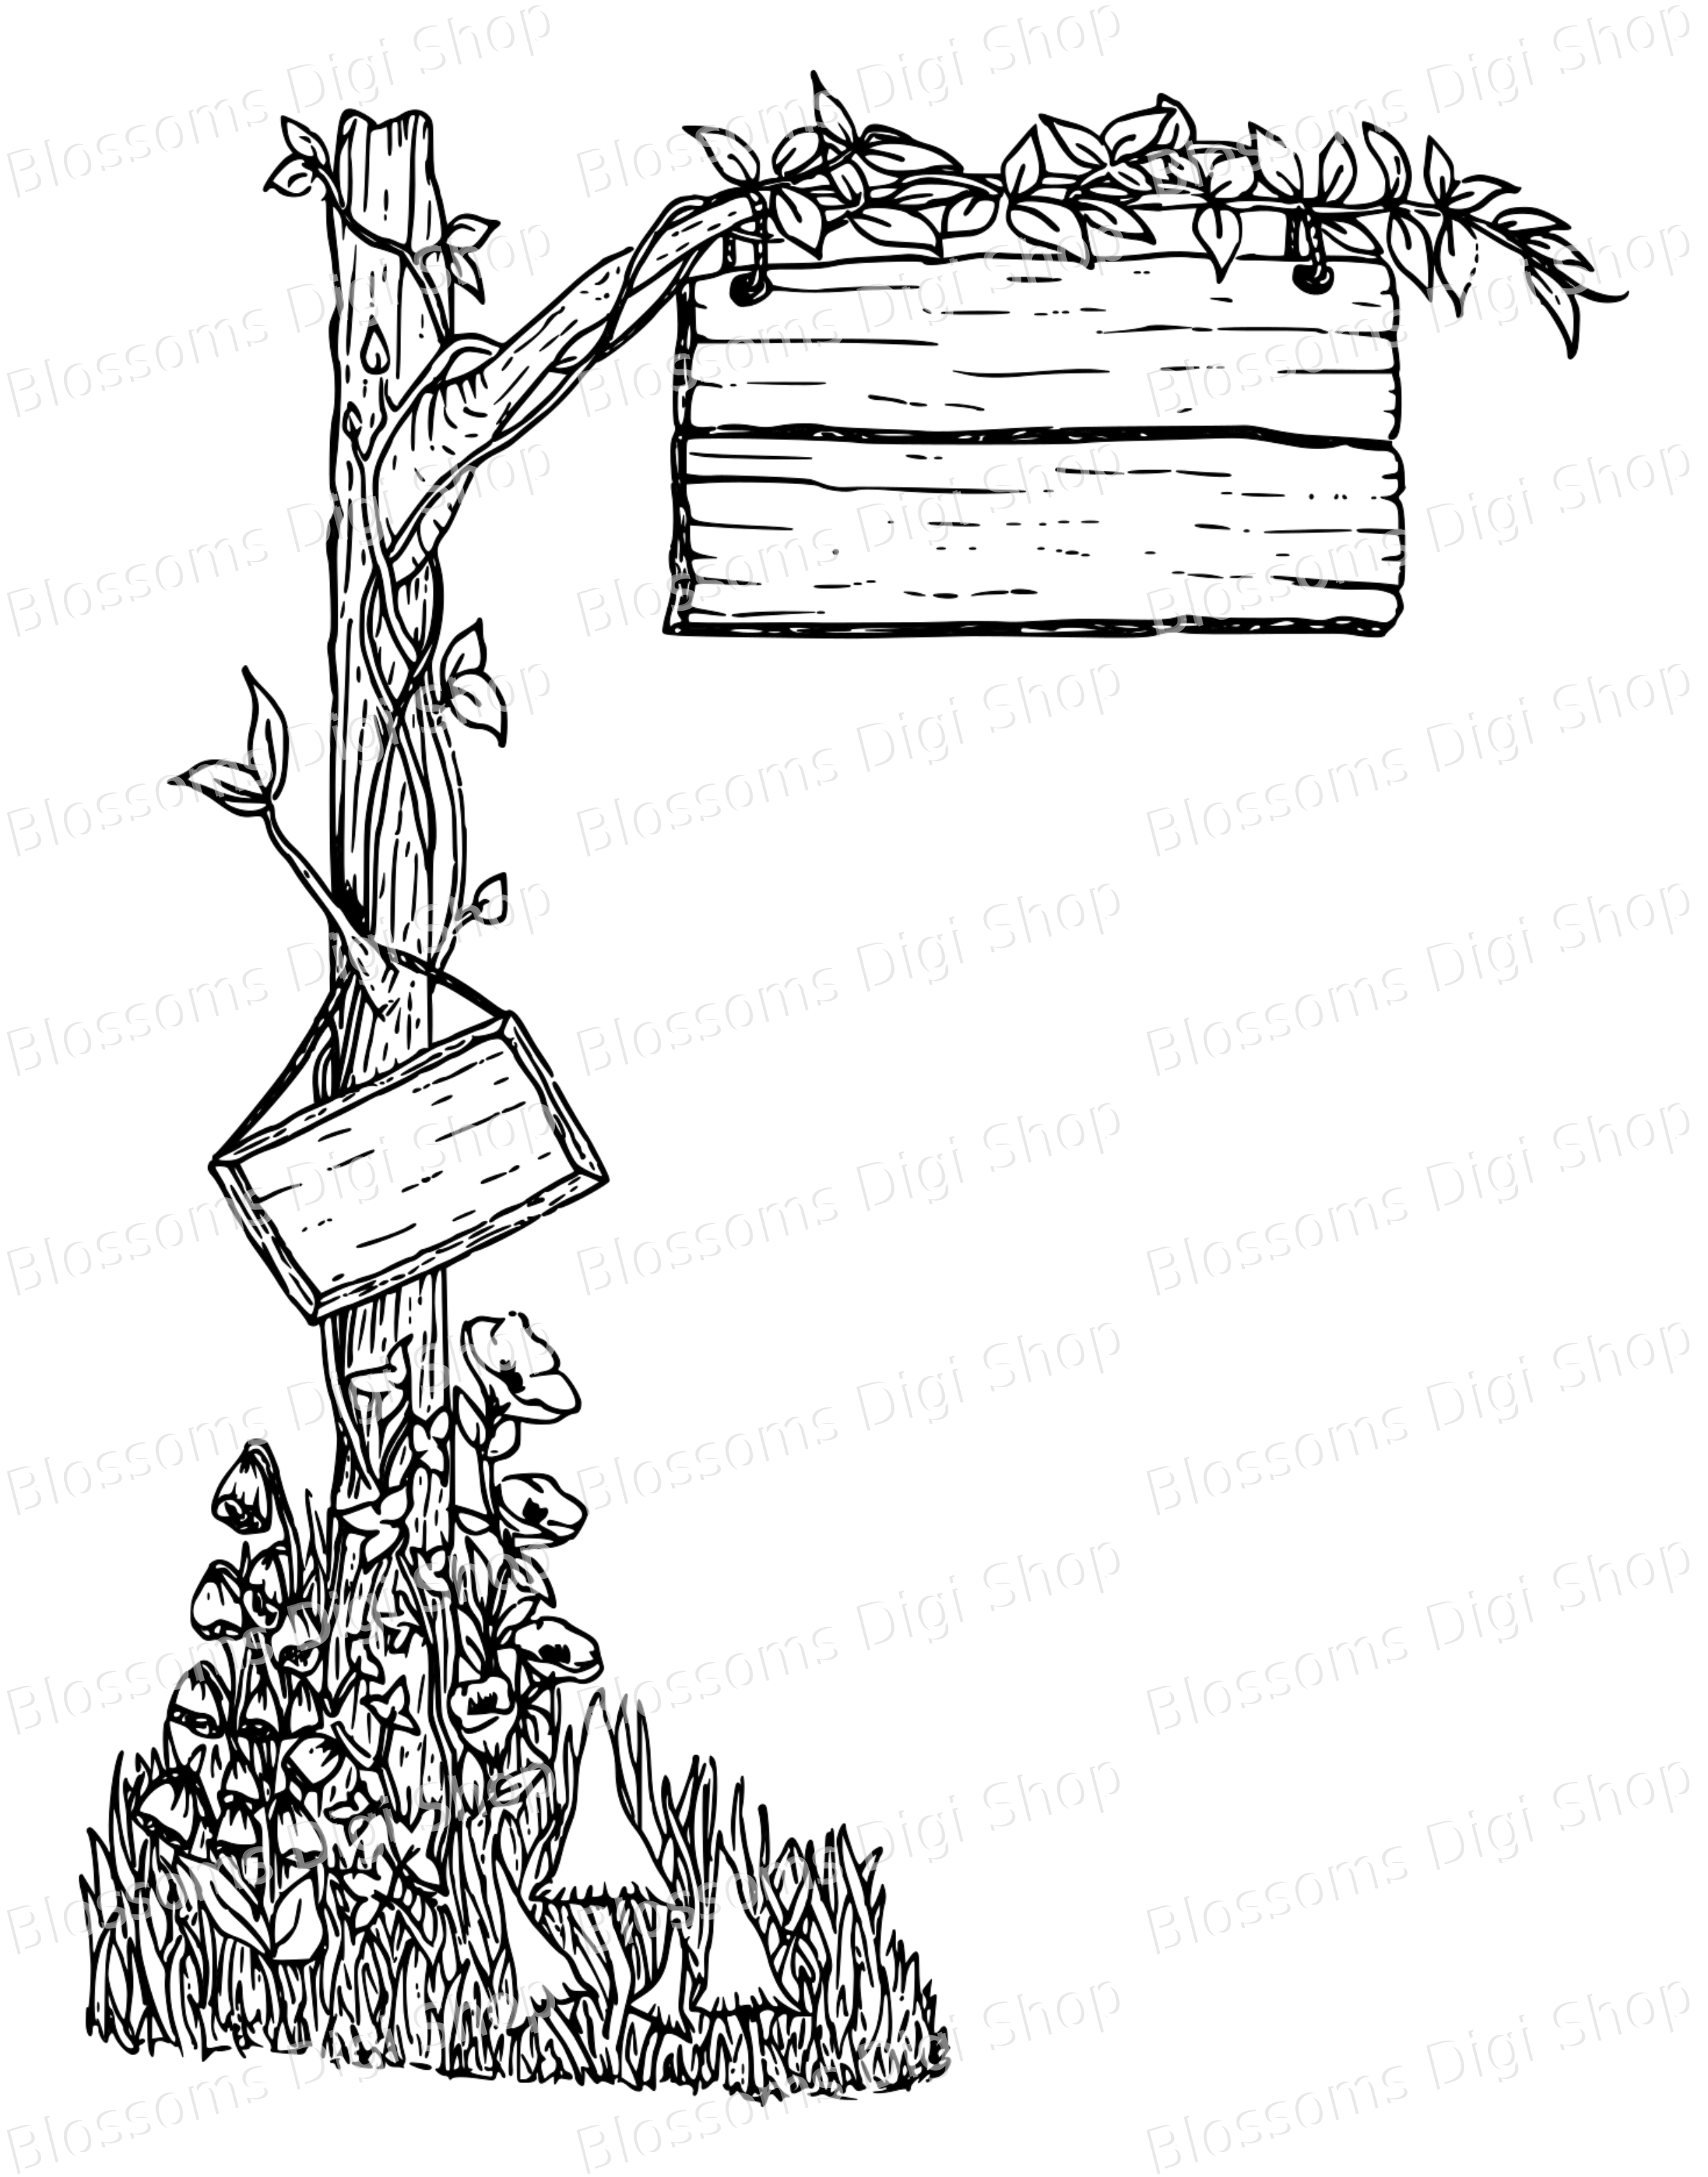 Fairy Signpost Digital Download Fairy Digi Stamp Hand Drawn Etsy How To Draw Hands Sign Post Digital Stamps